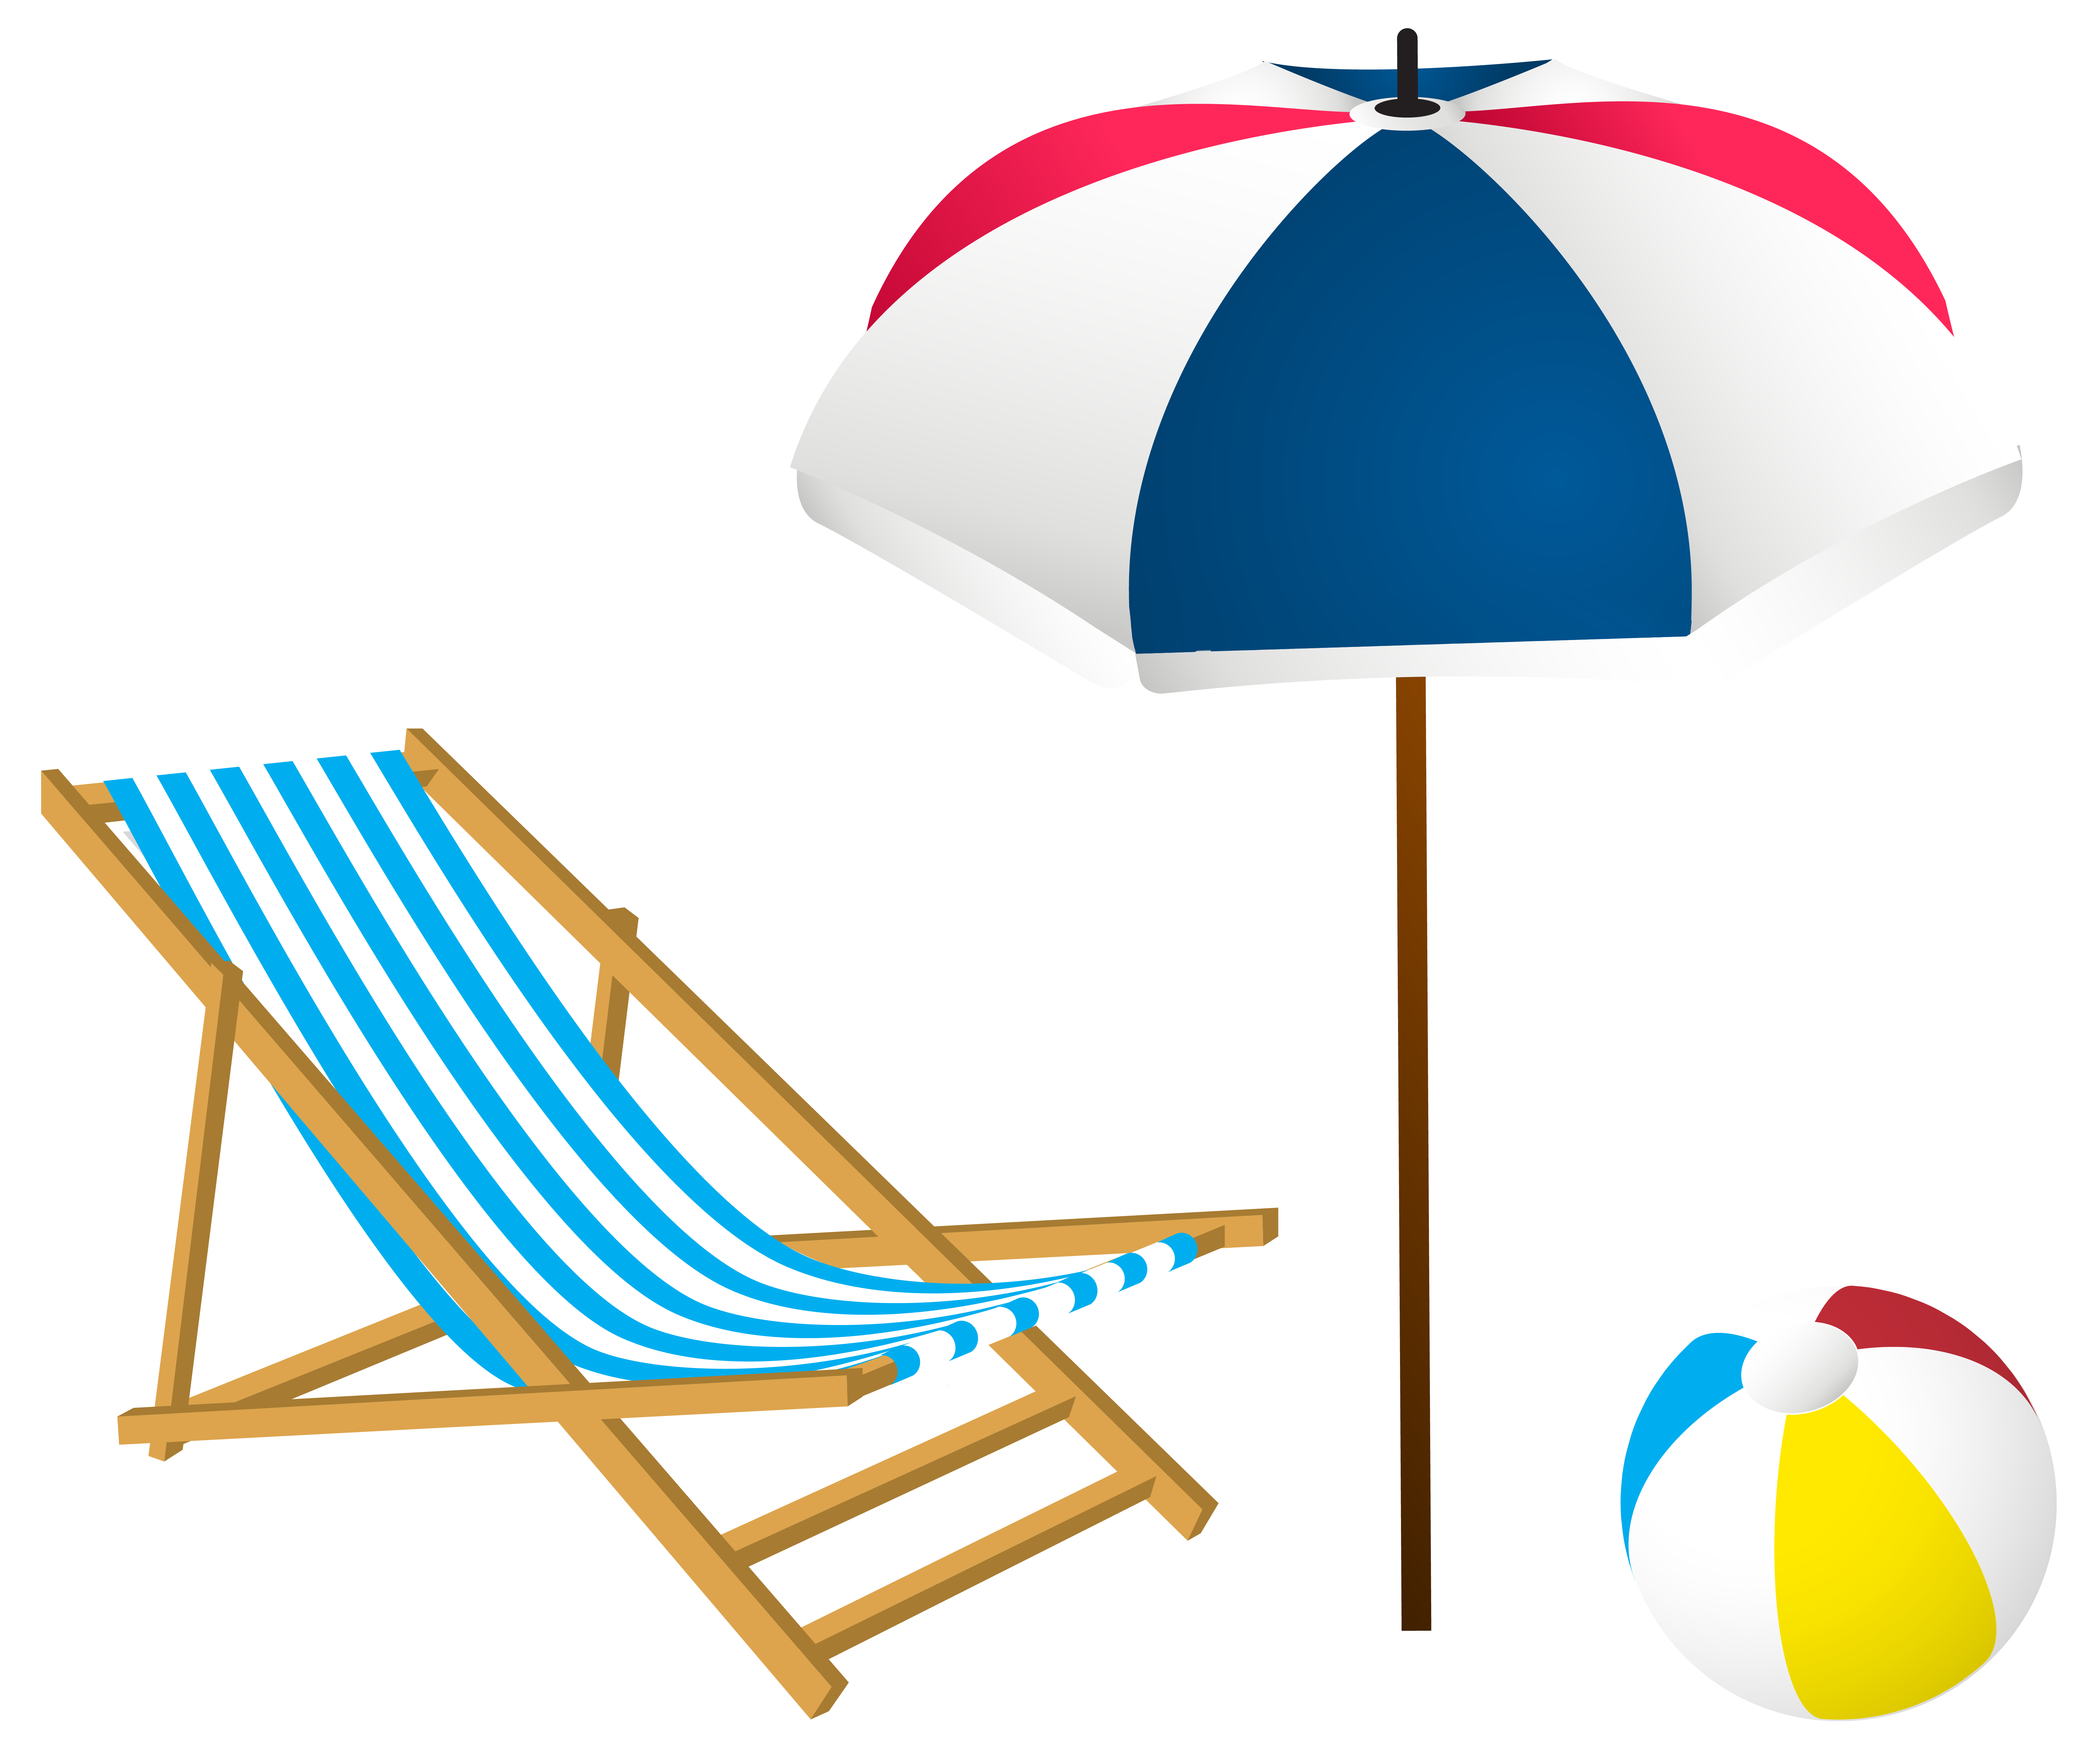 beach clipart at getdrawings com free for personal use beach rh getdrawings com beach clip art images free beach clipart free